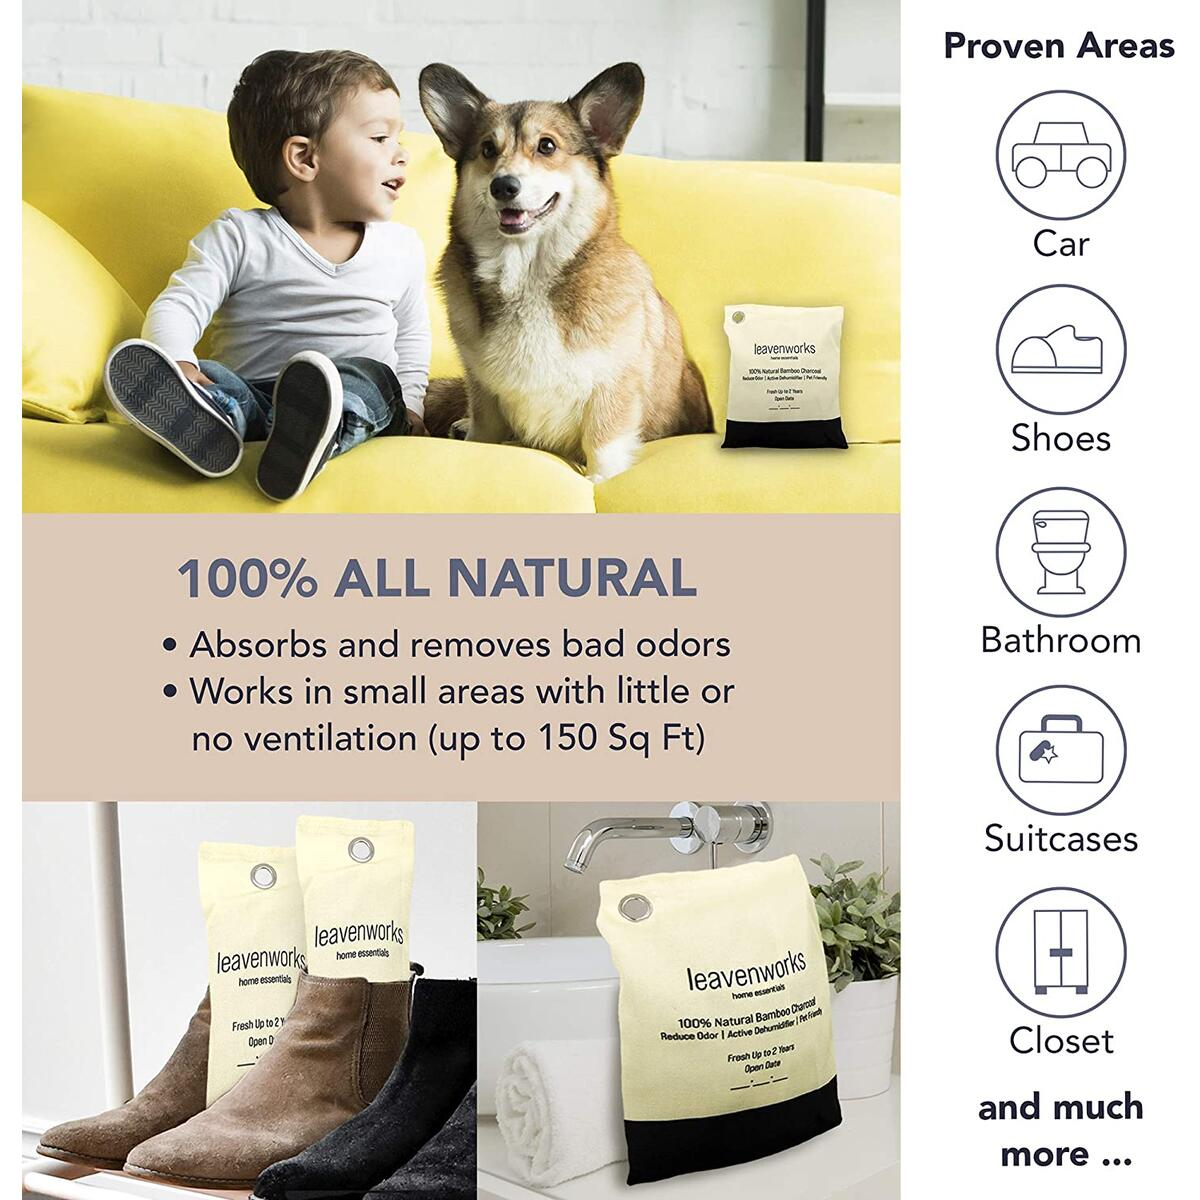 Leavenworks | Air Purifying Bags | Pet Friendly | Activated Charcoal Bags Odor Absorber | Deodorizers for Home | Charcoal Odor Absorber | Car Air Freshener | Charcoal Filters for Shoe | Variety of 8 Bags